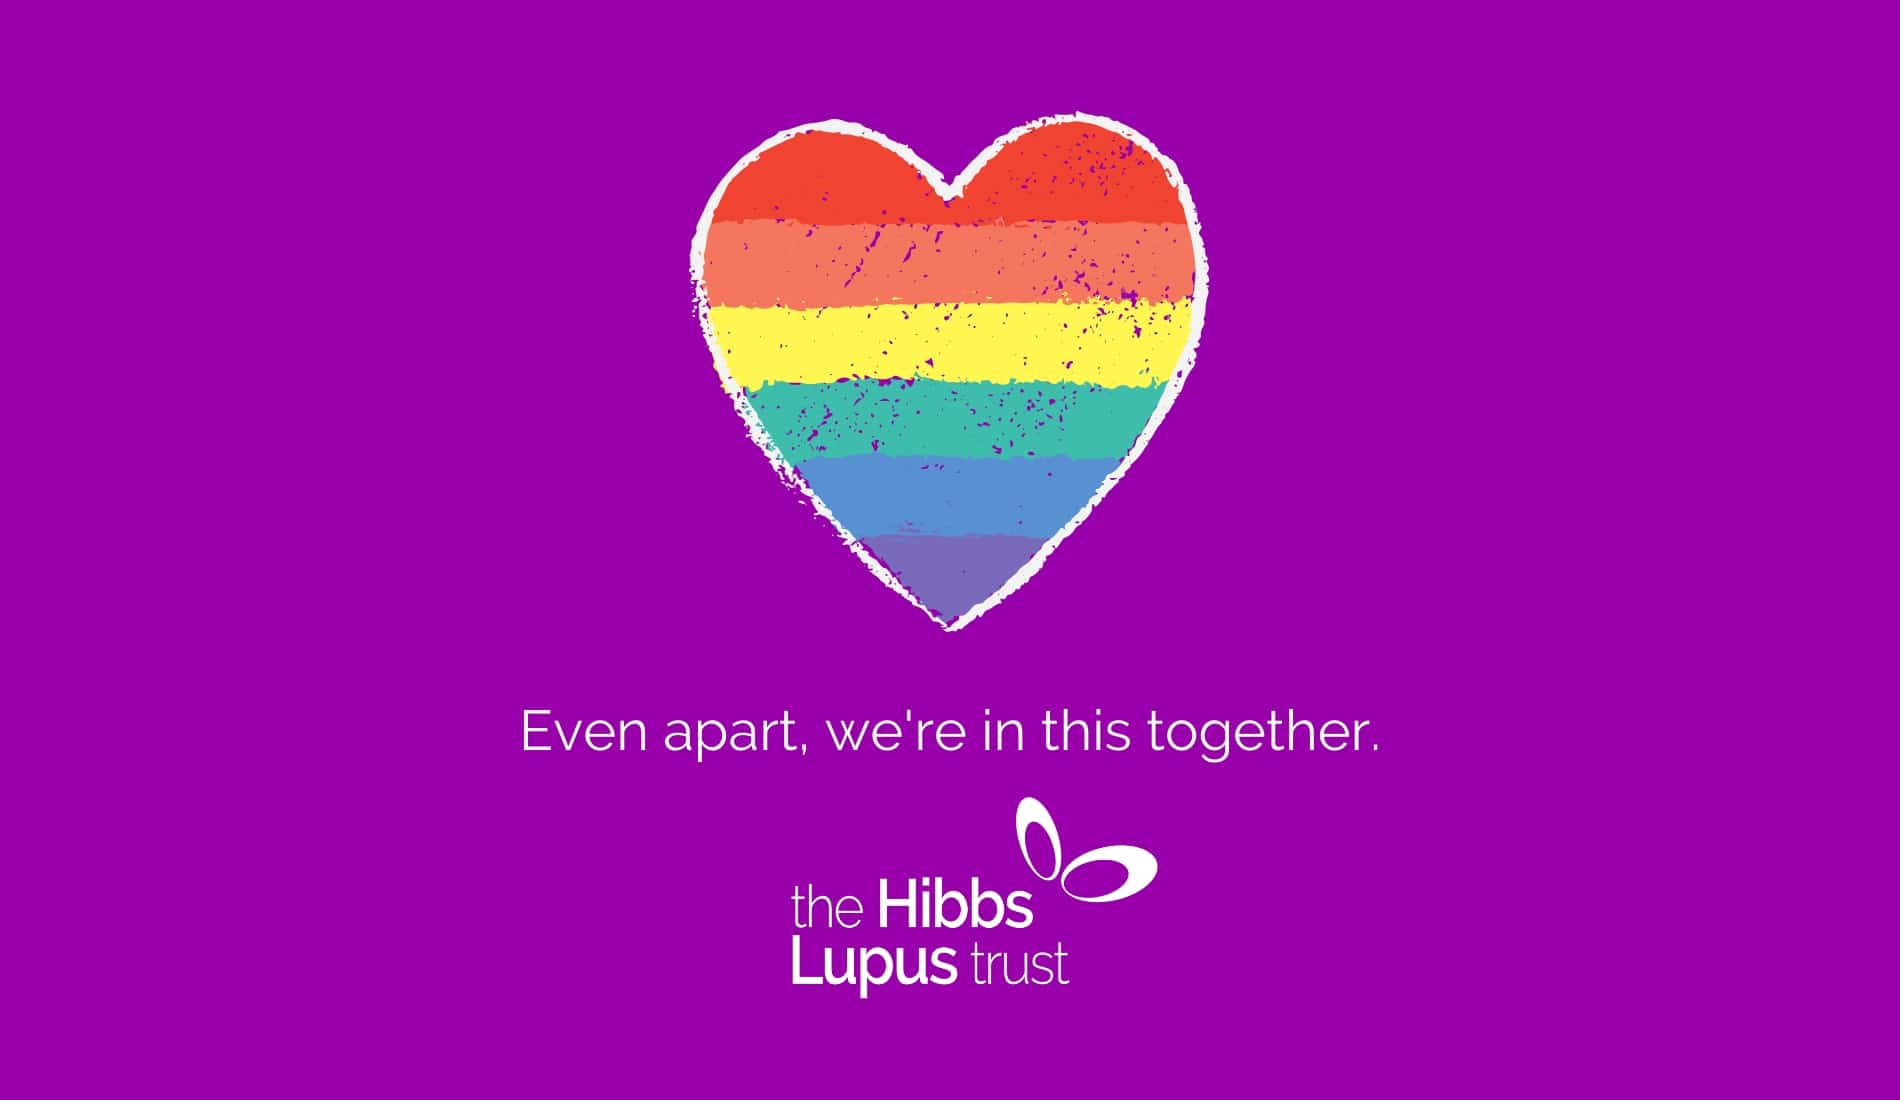 In This Together - The Hibbs Lupus Trust